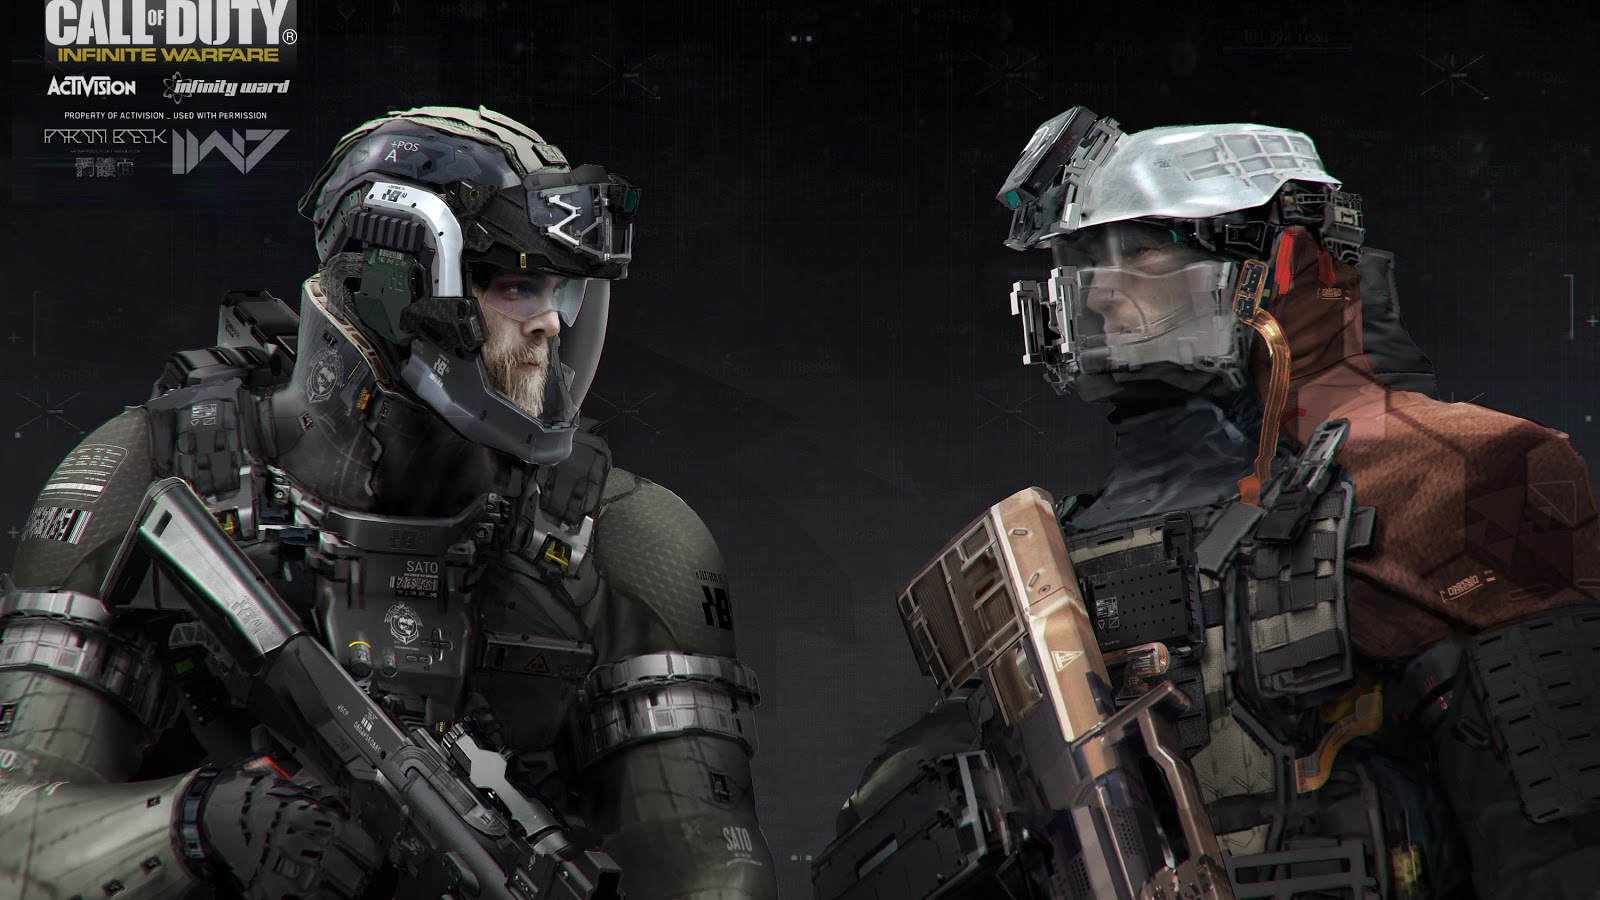 Call of Duty: Infinite Warfare Concept Art by Aaron Beck